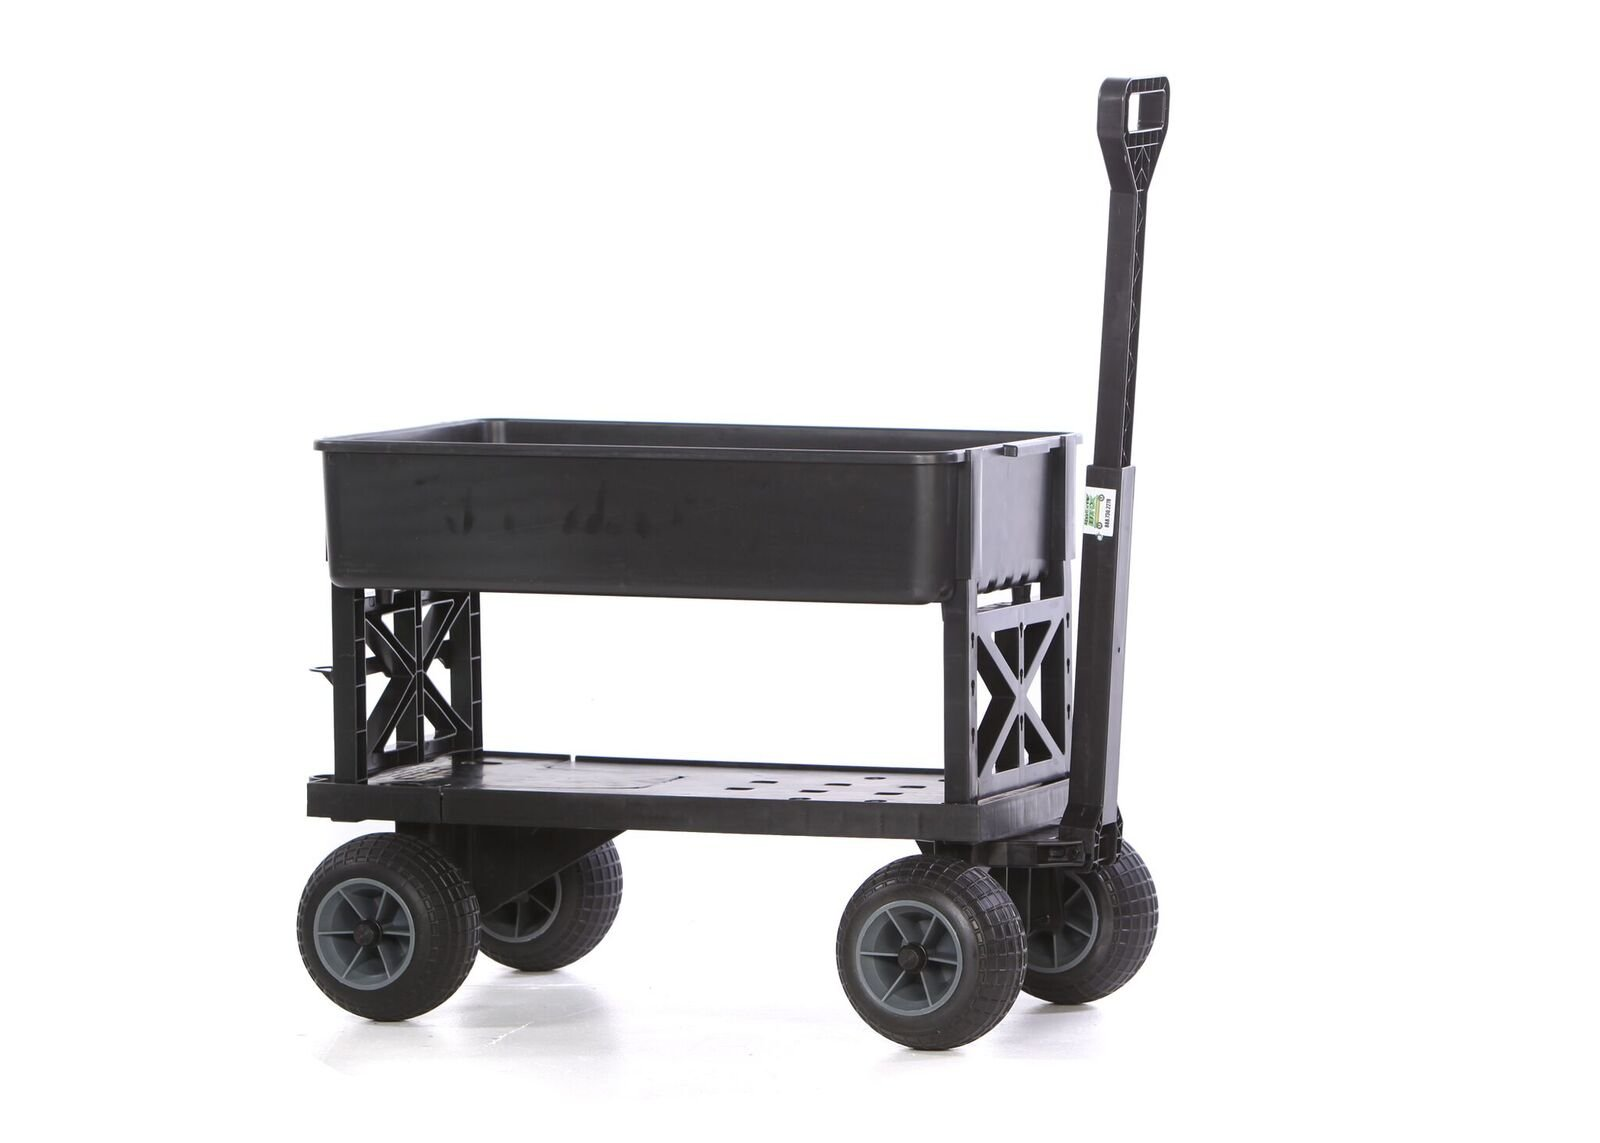 Mighty Max Cart Plus One All-Purpose Utility and Garden Cart with Black Tub and with All-Terrain Weatherproof Wheels